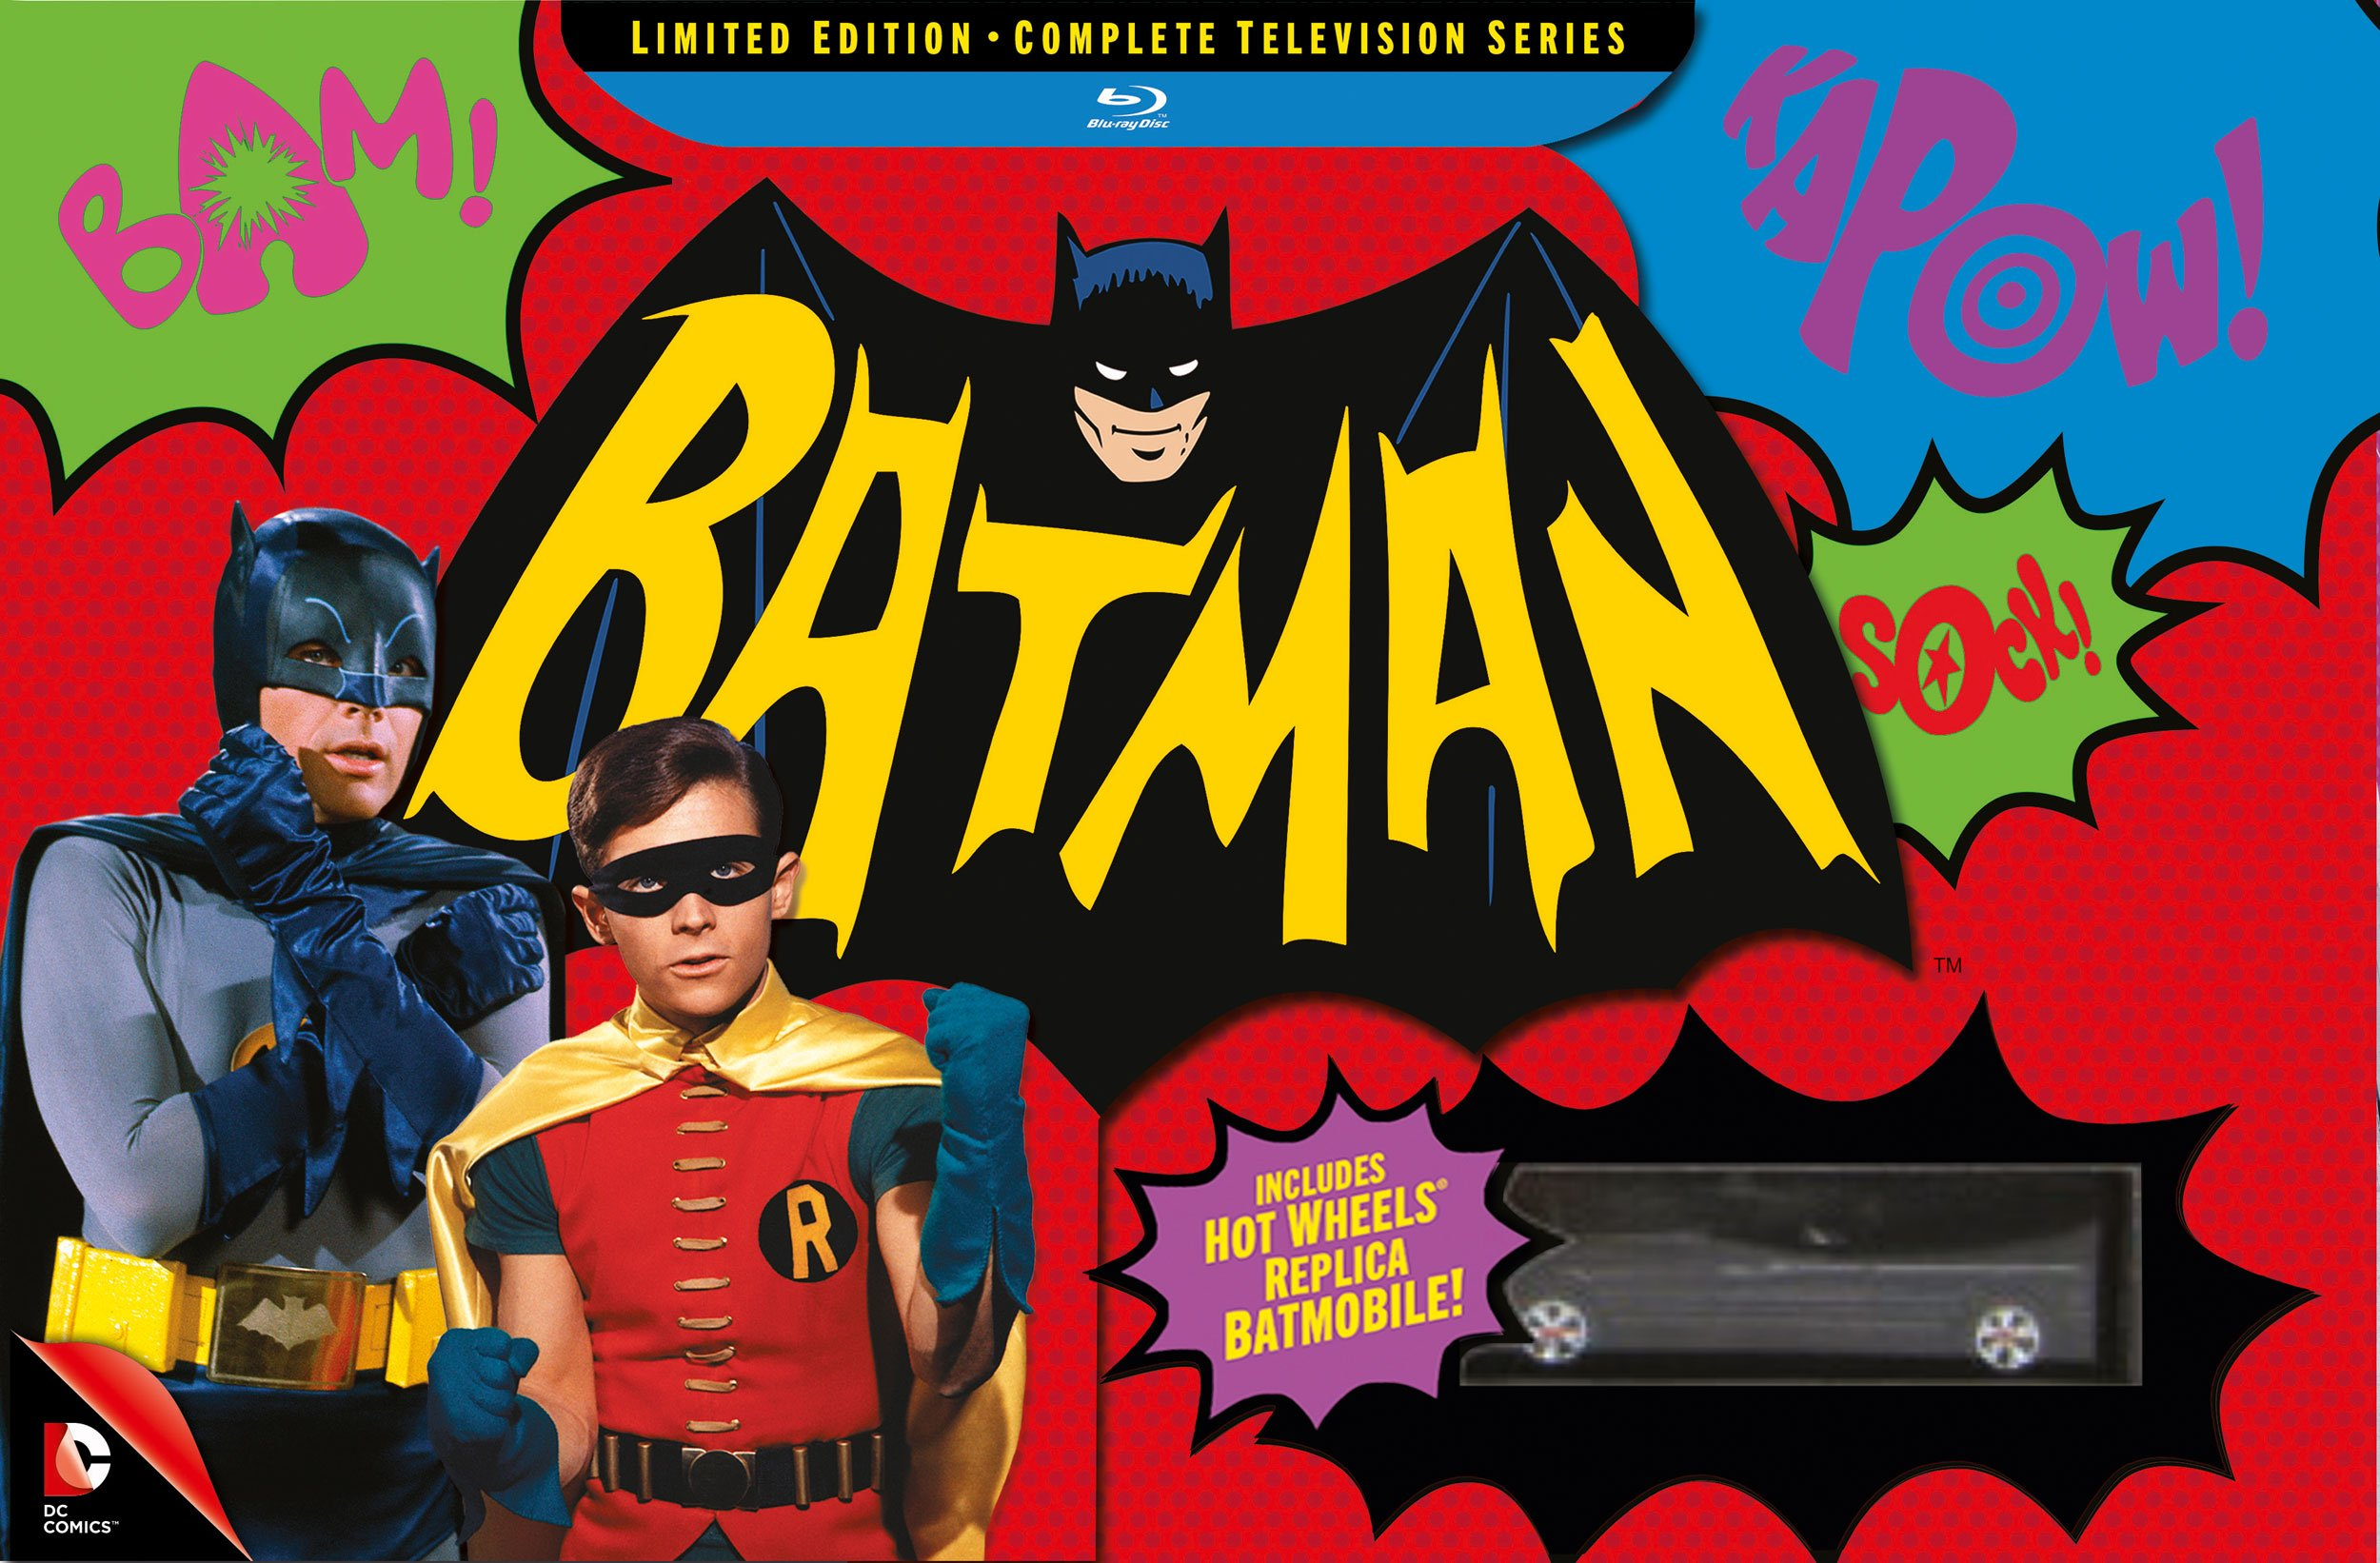 Batman: Complete Television Series Limited Edition Blu-Ray Boxset by